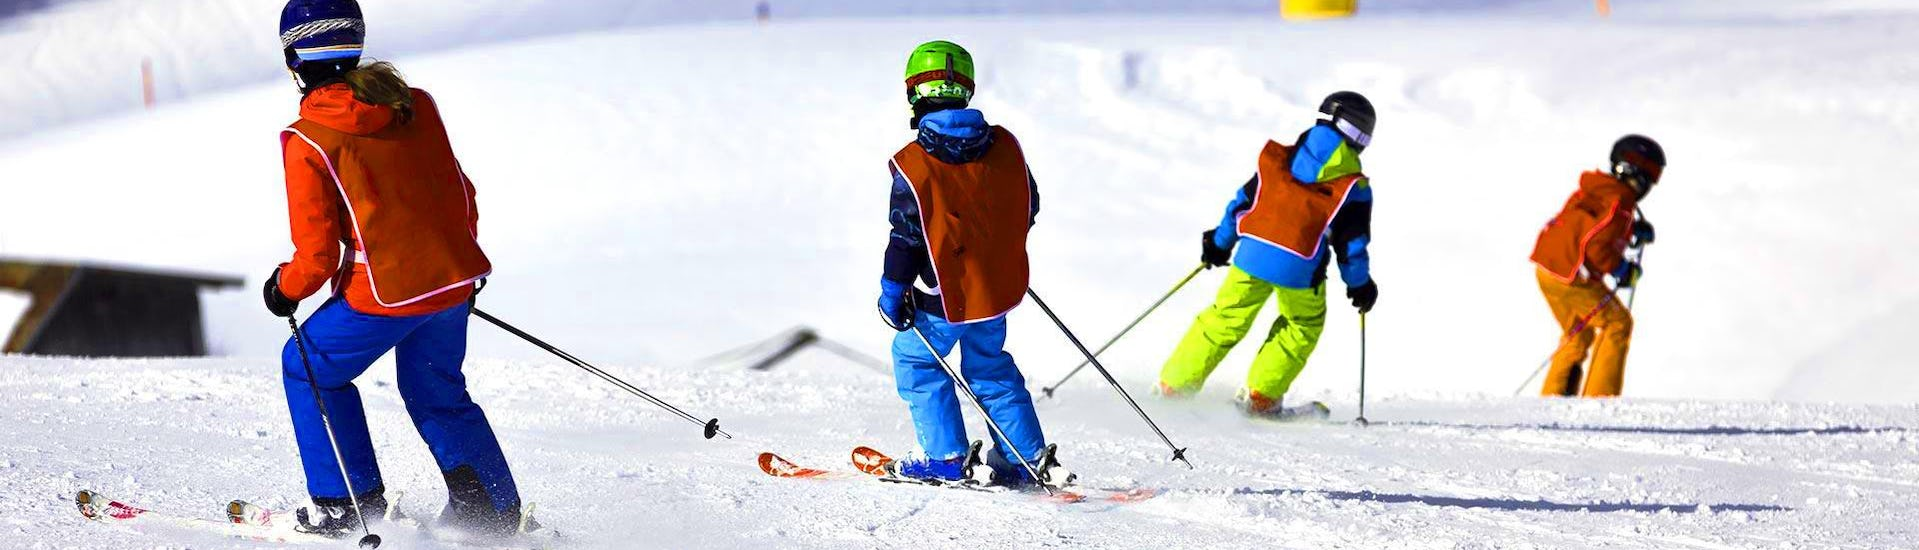 Ski Private Instructor for Kids - All Levels